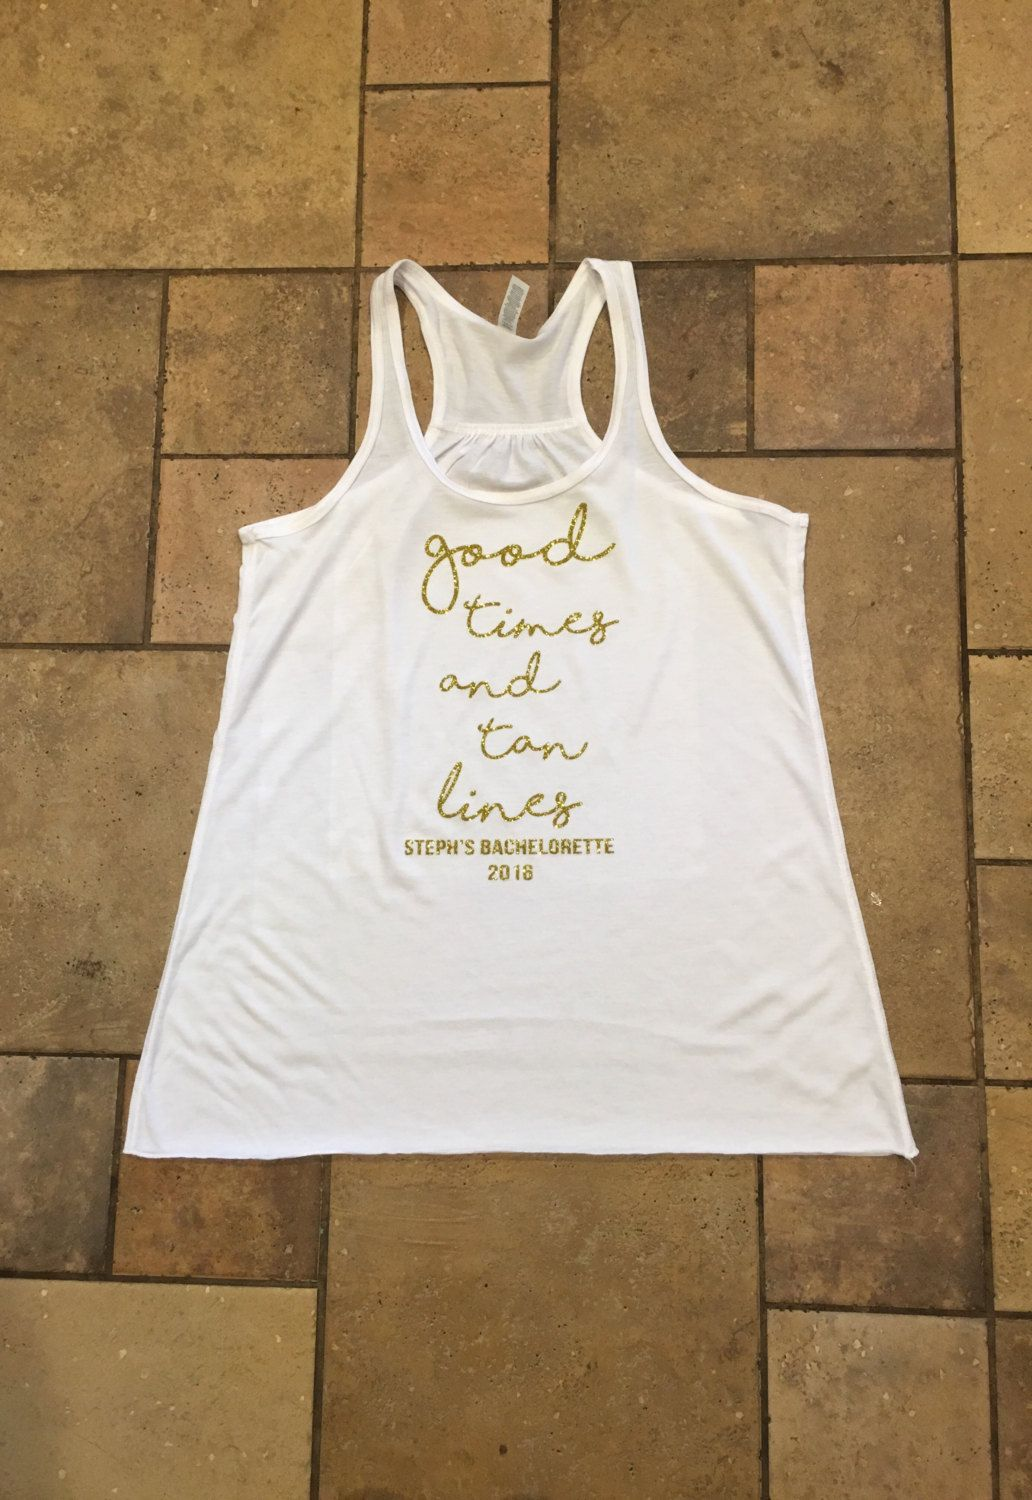 Bachelorette Party tank tops - Bach weekend shirts - Girls night shirts - bachelorette  party favors - bachelorette weekend gifts - good time by ... 607450a63ee1